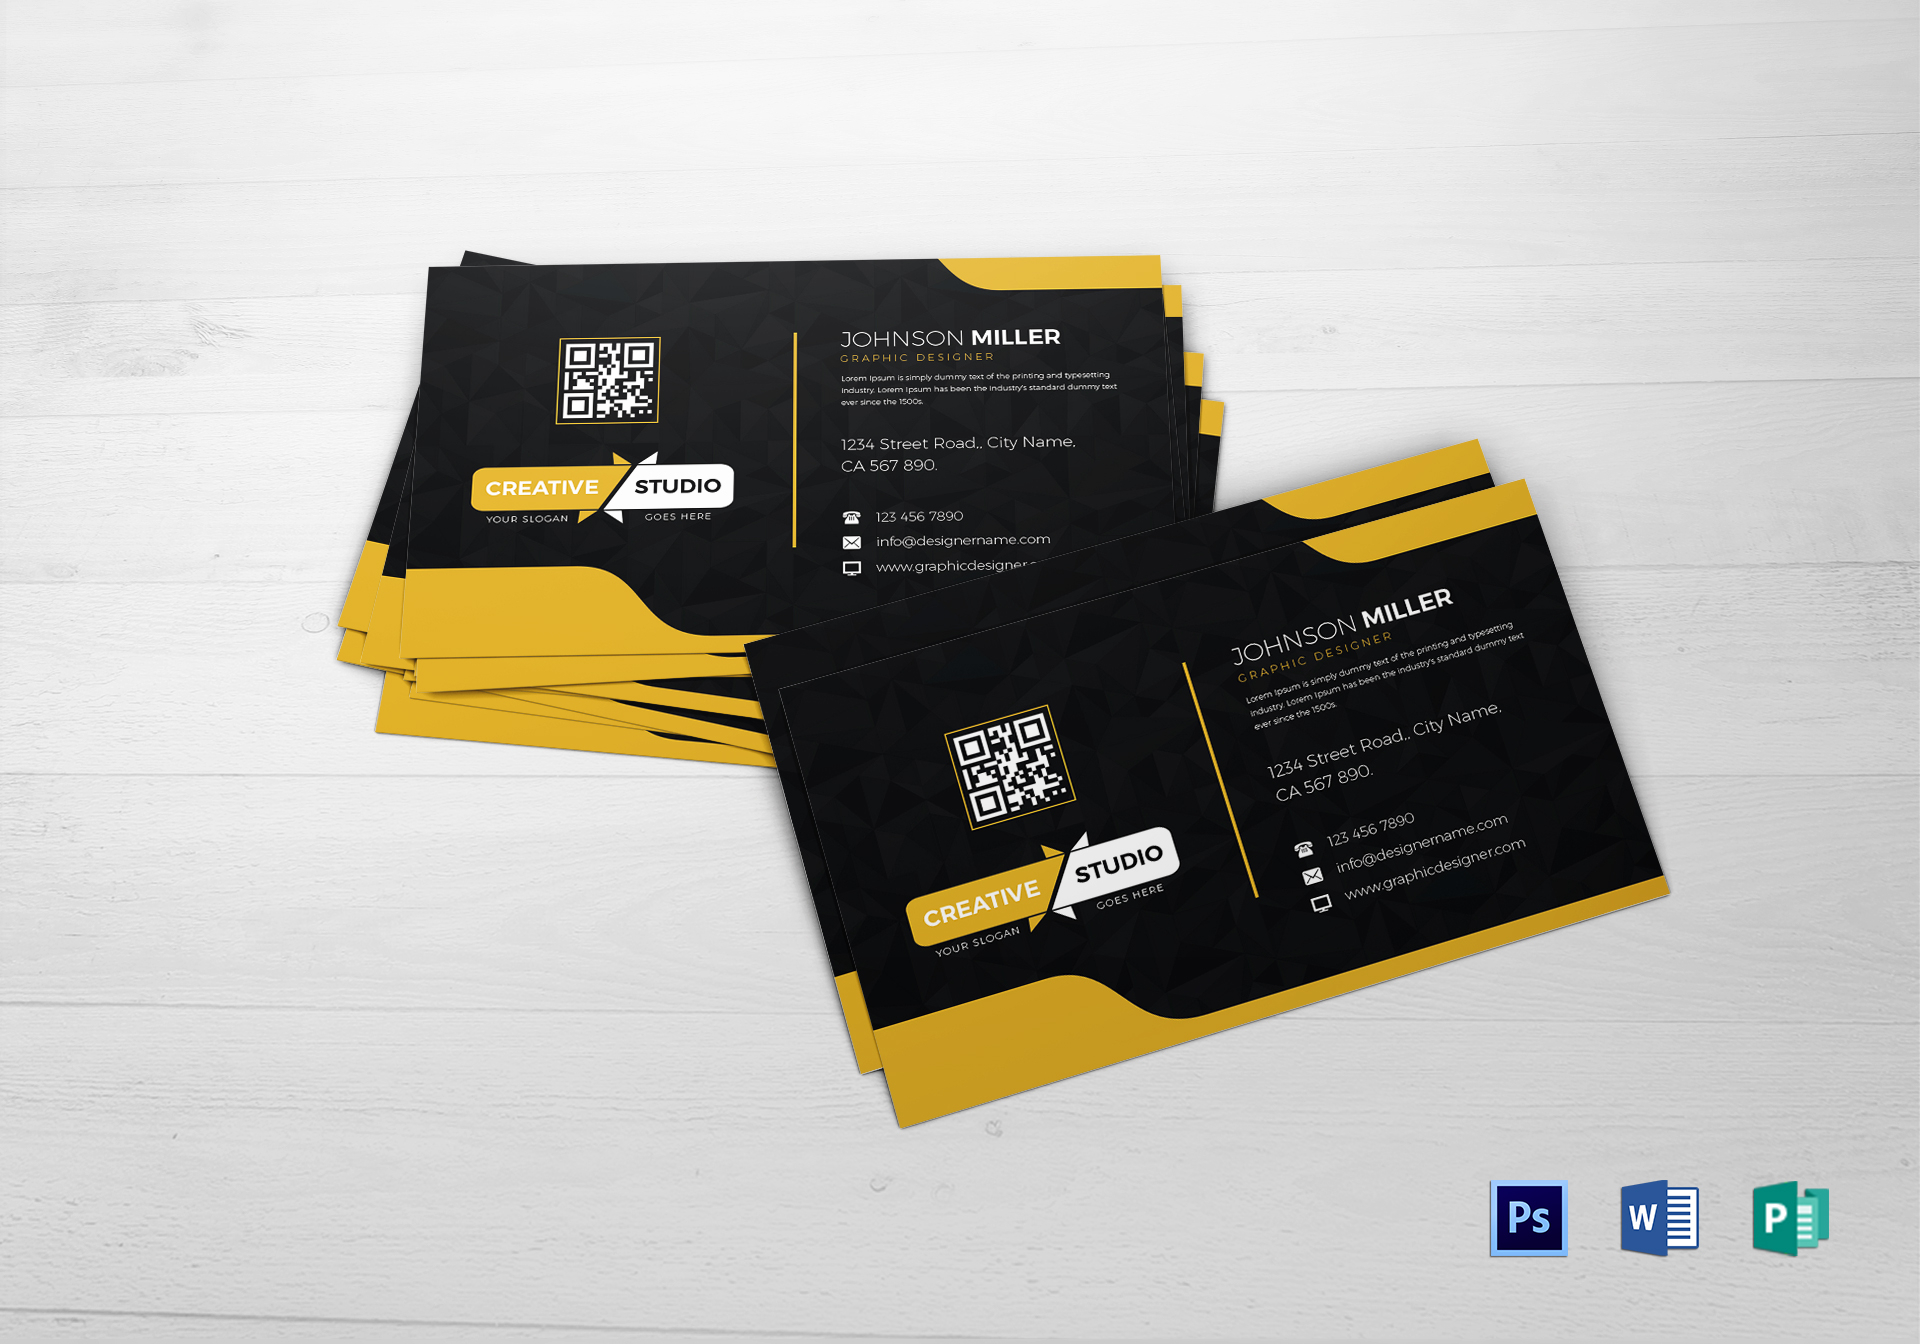 Graphic designer business card design template in psd word publisher graphic designer business card accmission Image collections